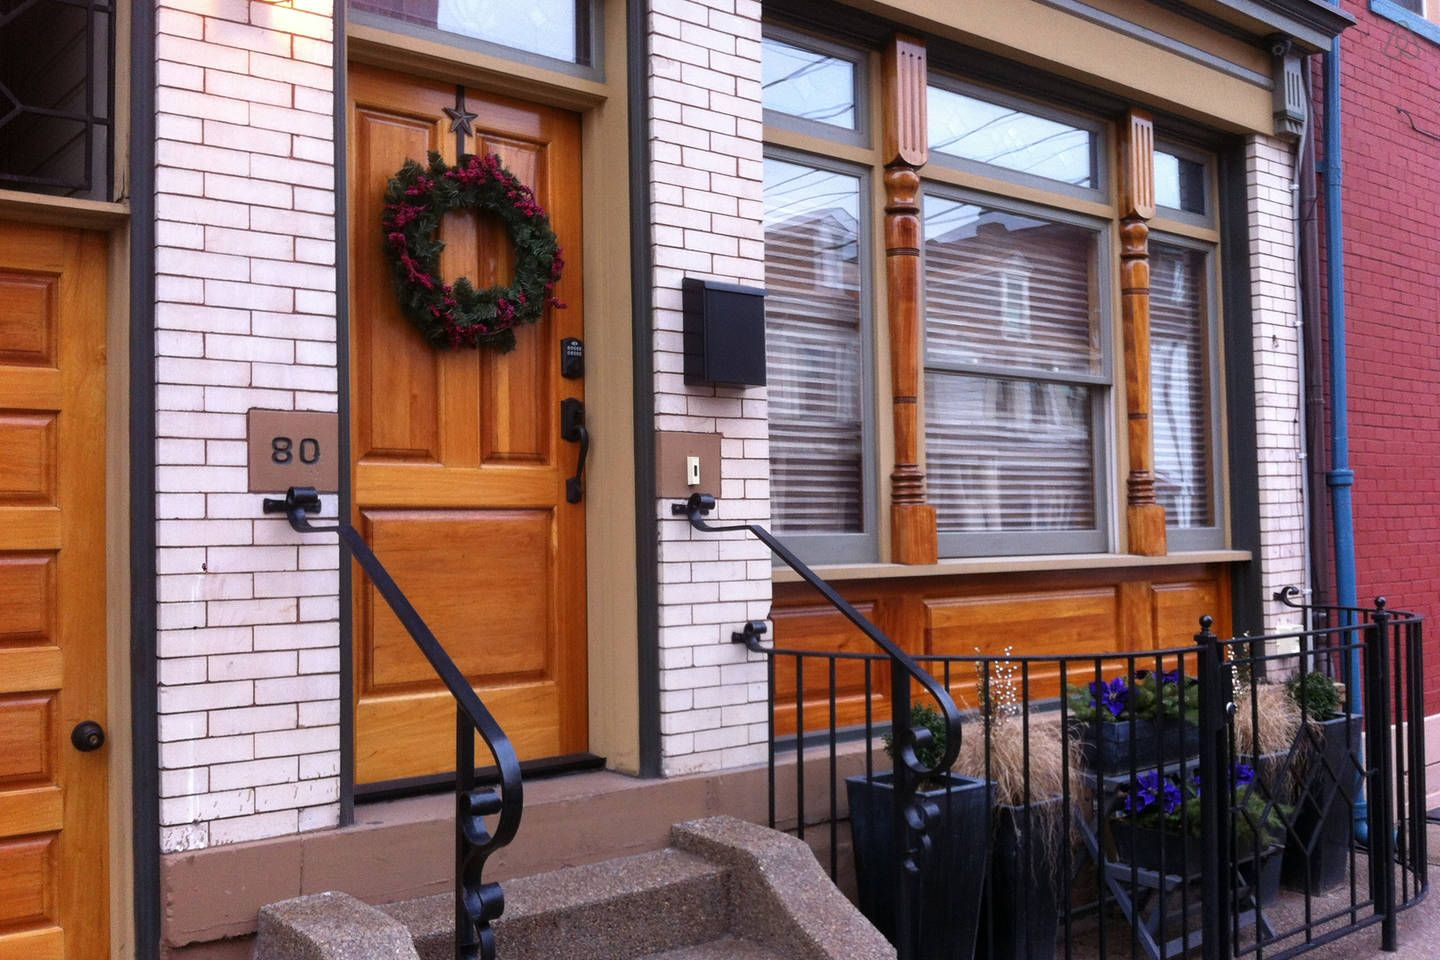 Holiday in Historic South Side - vacation rental in ...